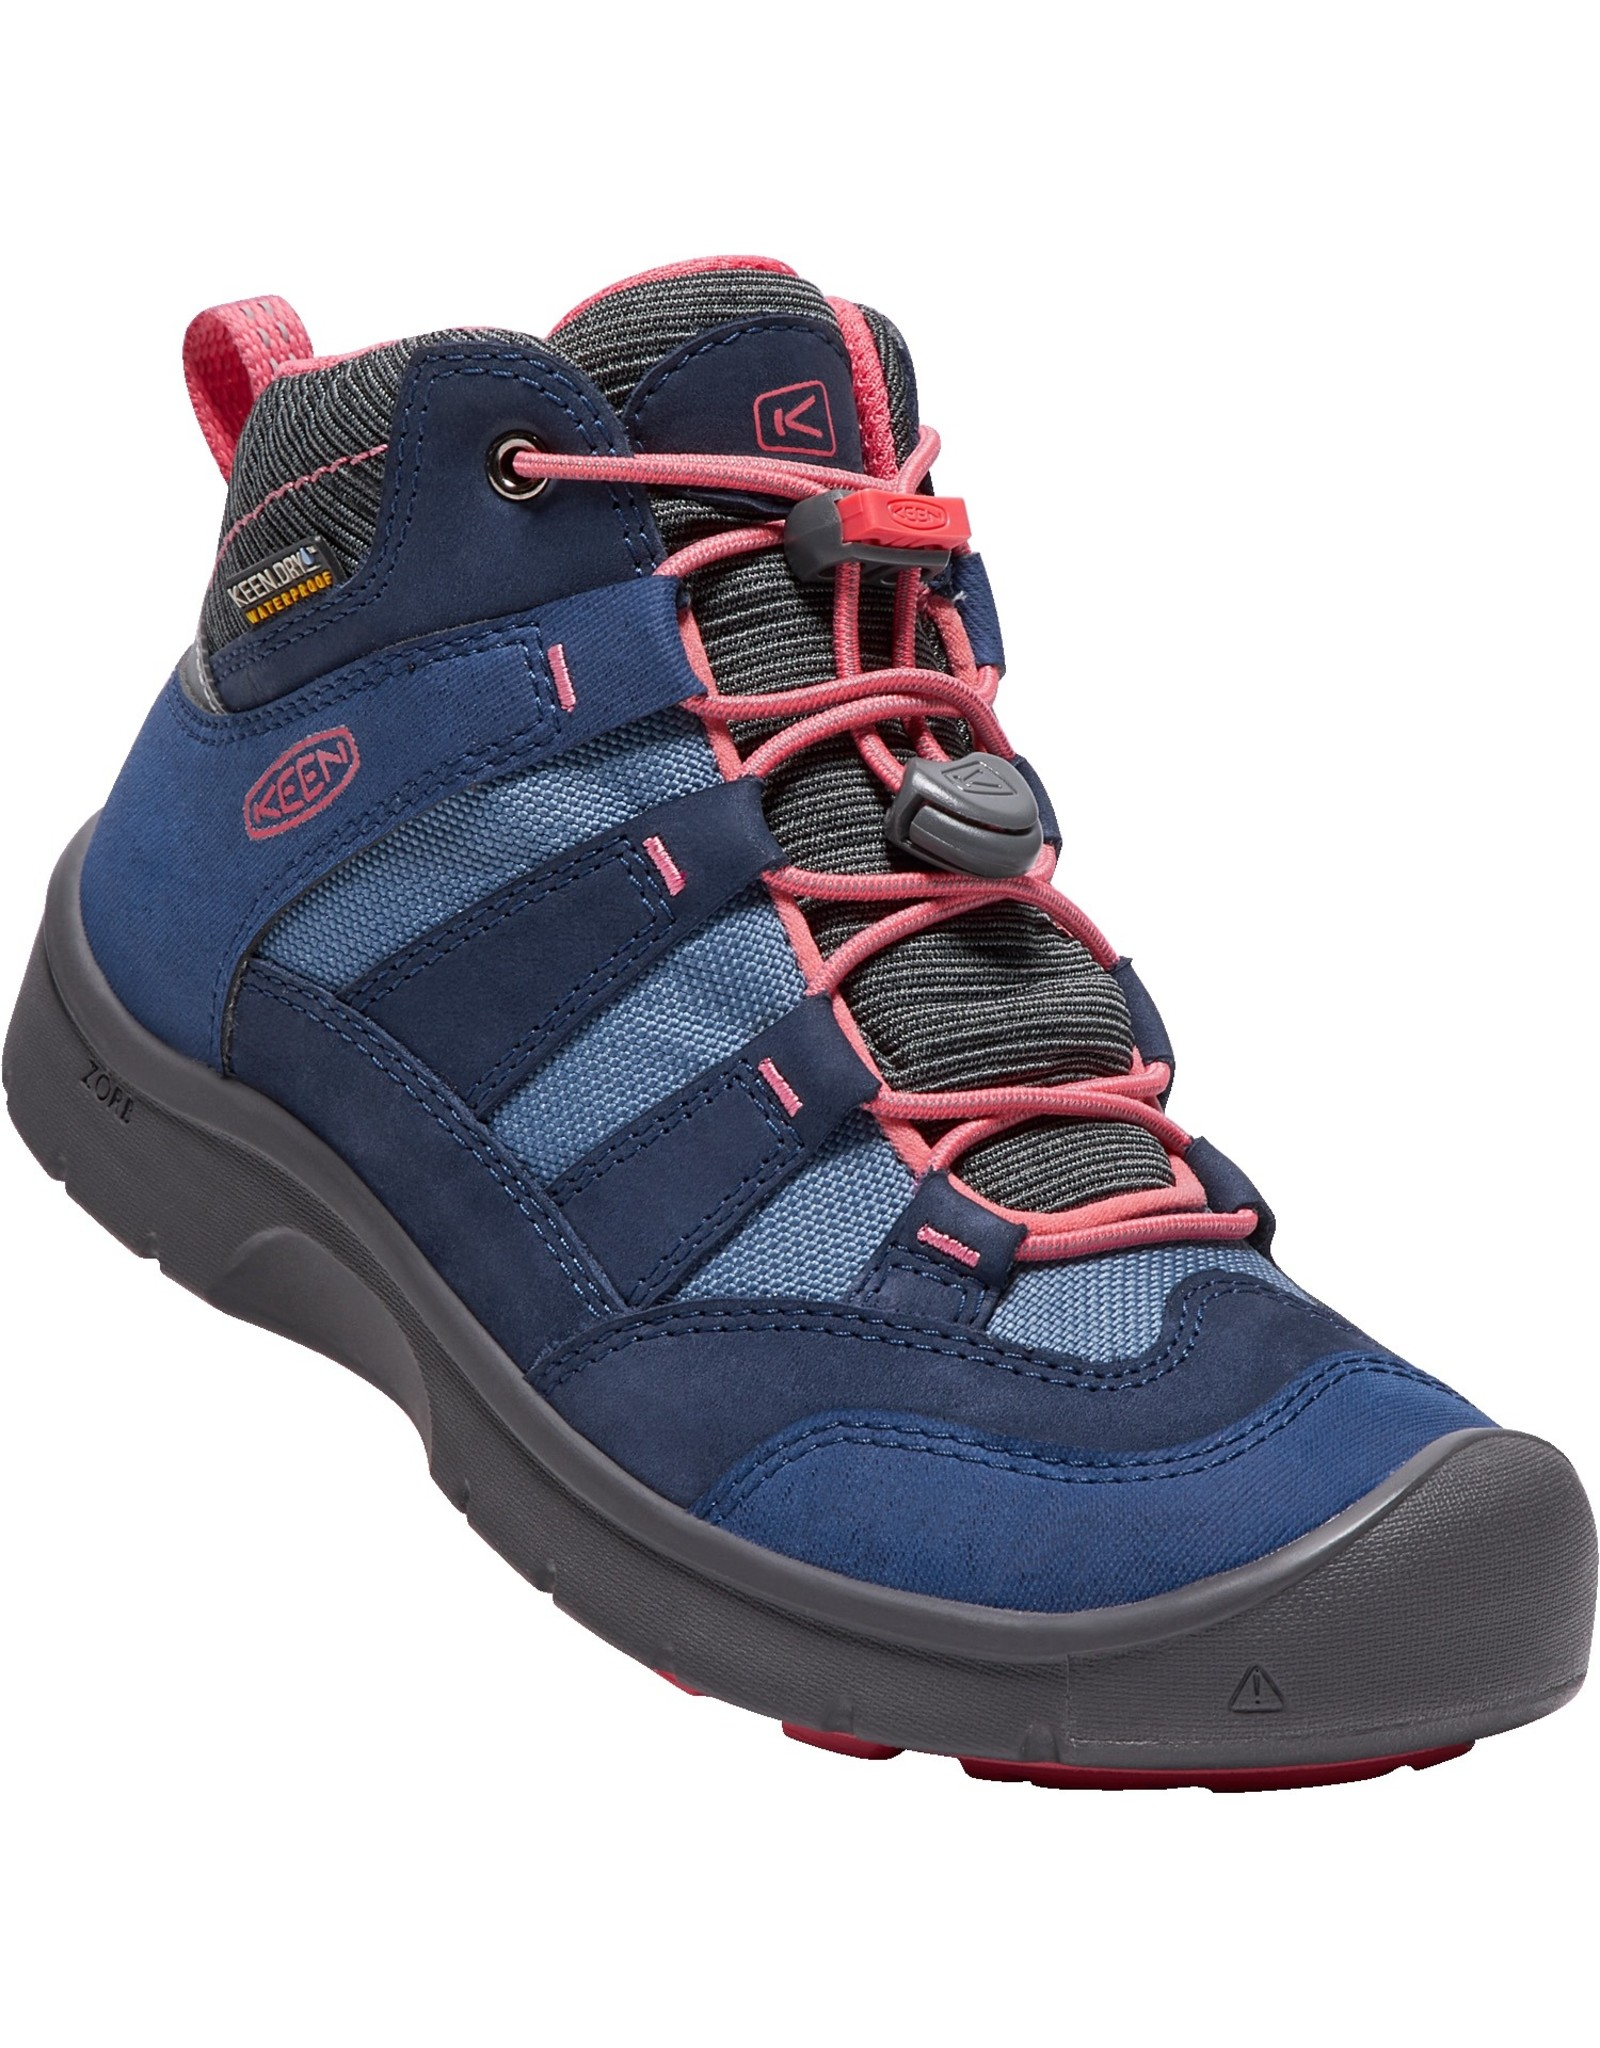 KEEN KEEN - Y - Hikeport Mid WP